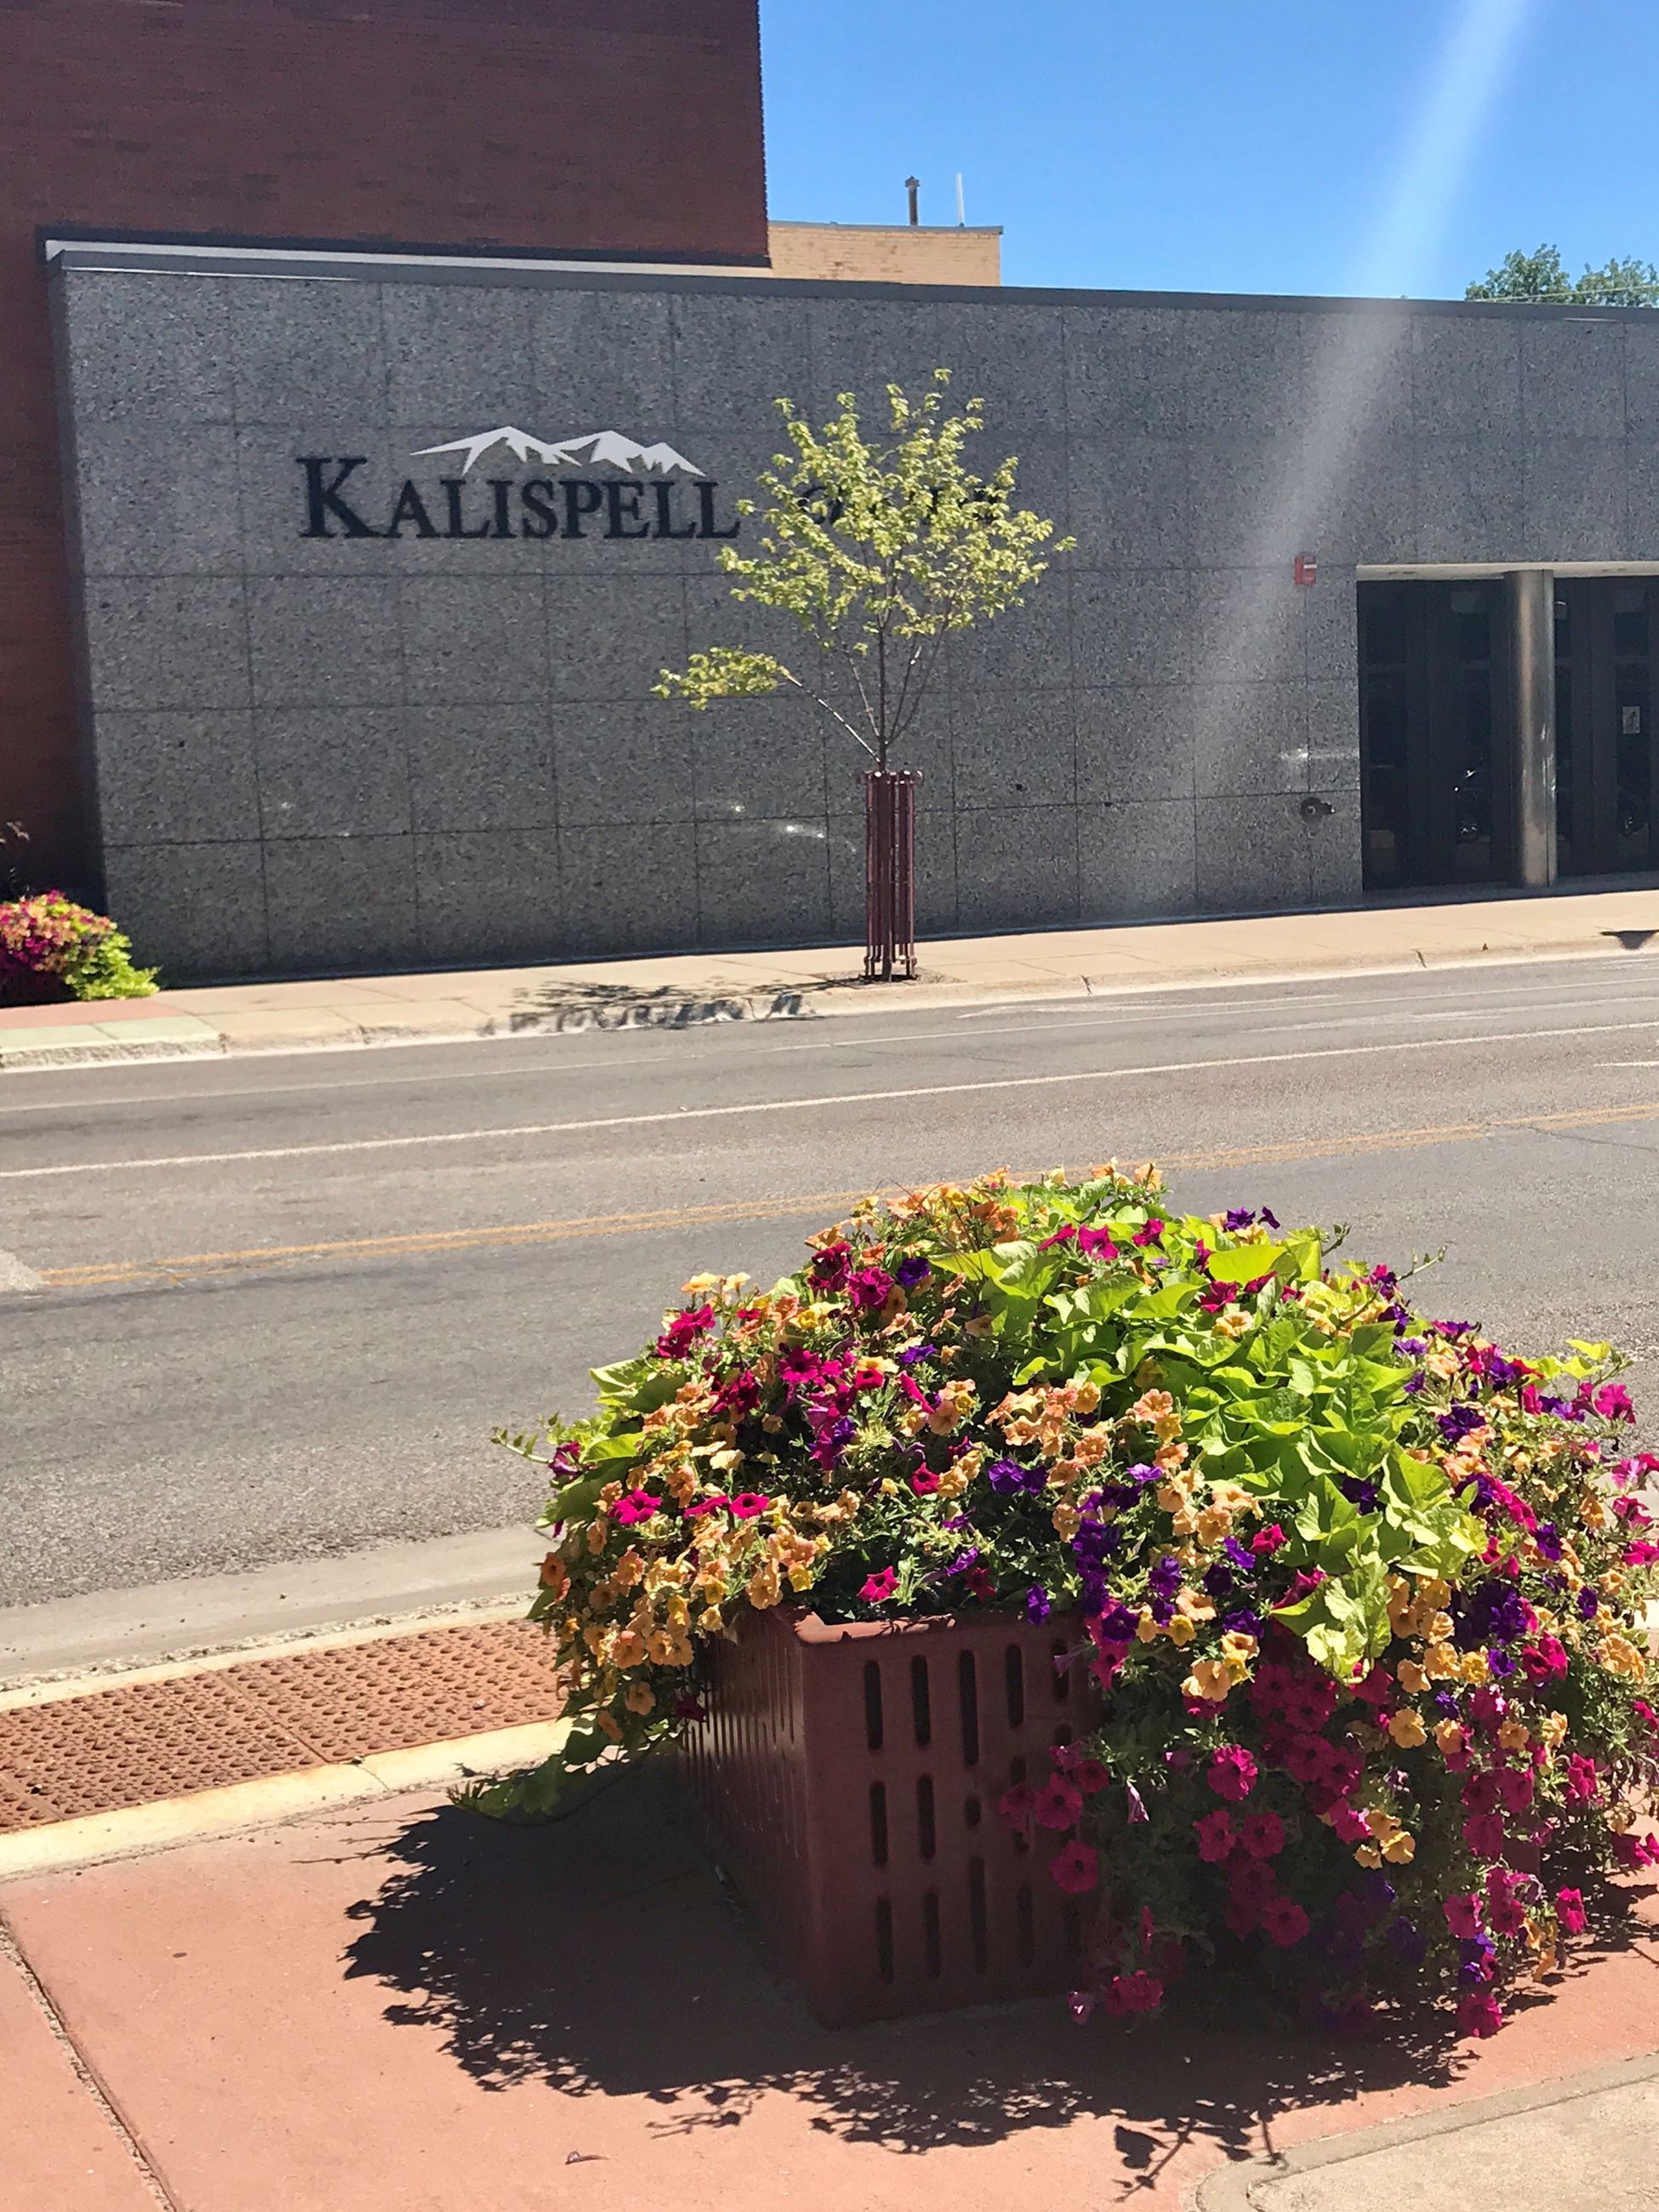 Kalispell City Hall from across street